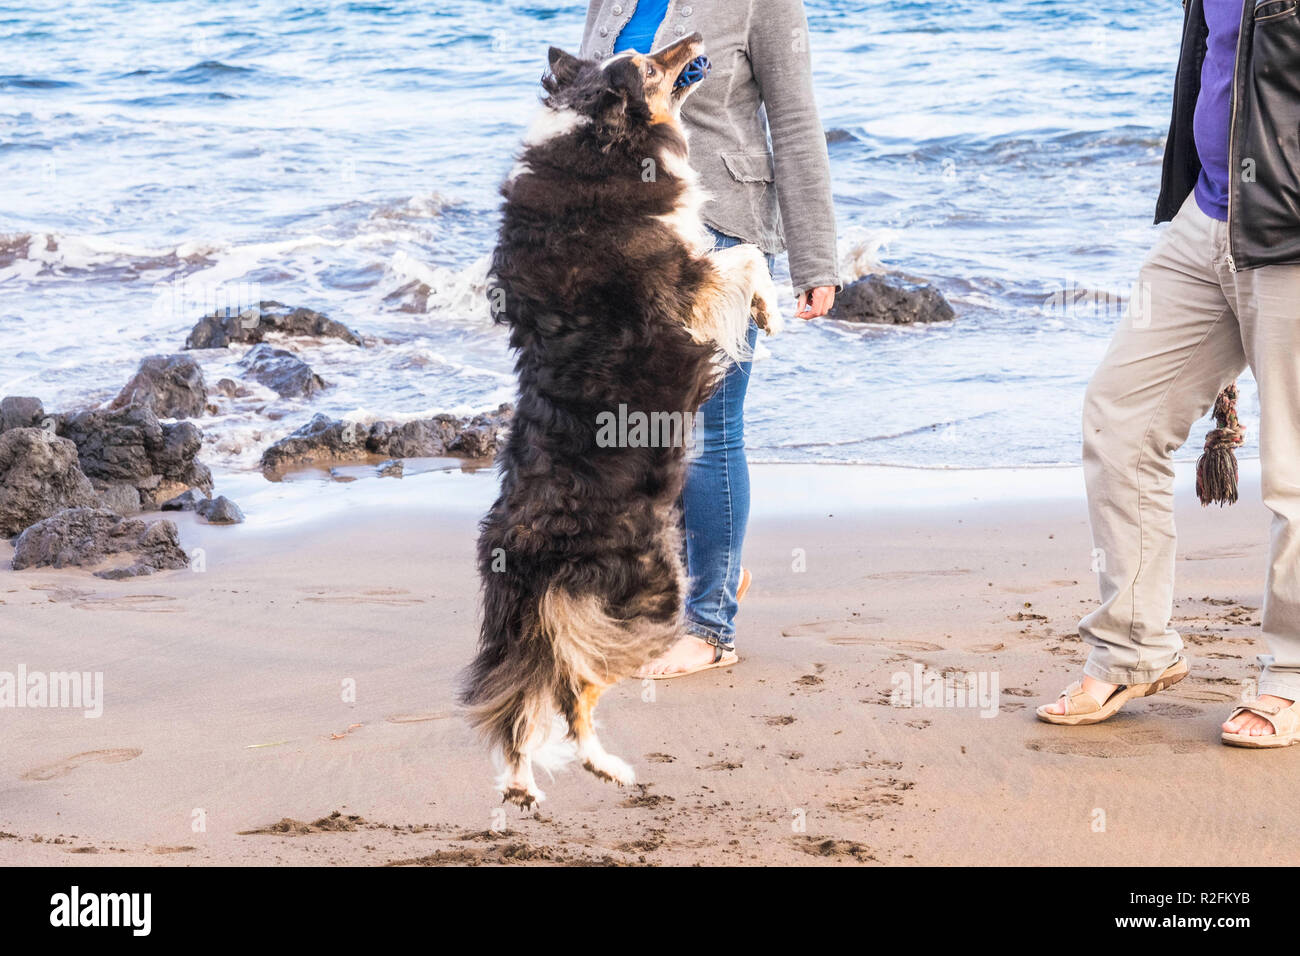 couple on the beach walking and dog border collie jumping playing with them for happiness leisure activity outdoor - Stock Image